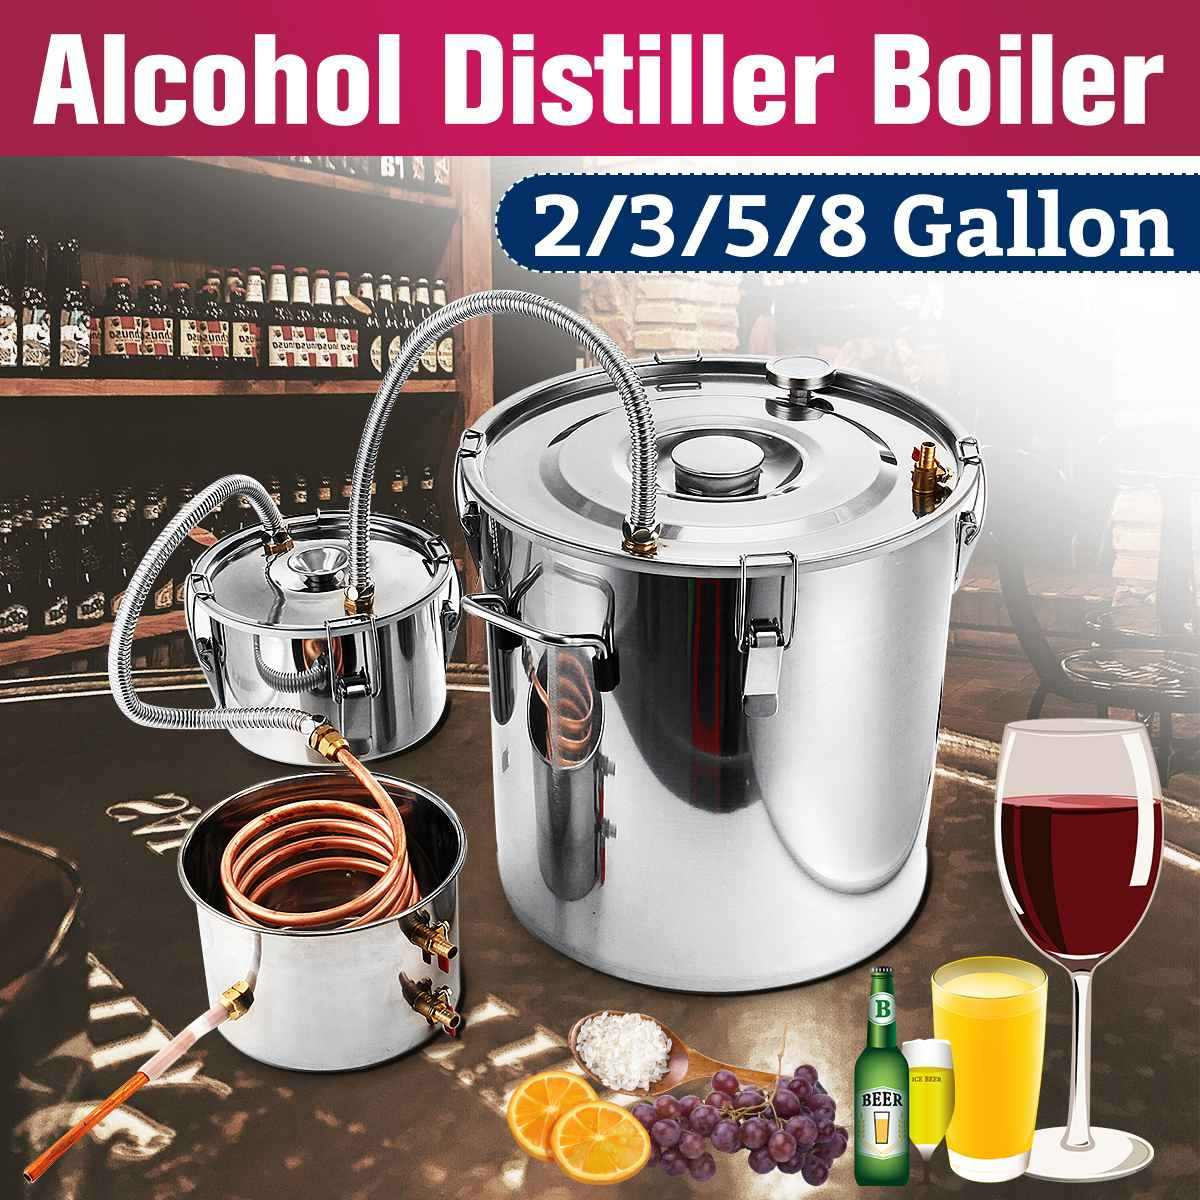 2/3/5/8 Gallon DIY Home Brew Distiller Moonshine Alcohol Still Stainless Copper Water Wine Essential Oil Brewing Kit With Cooli